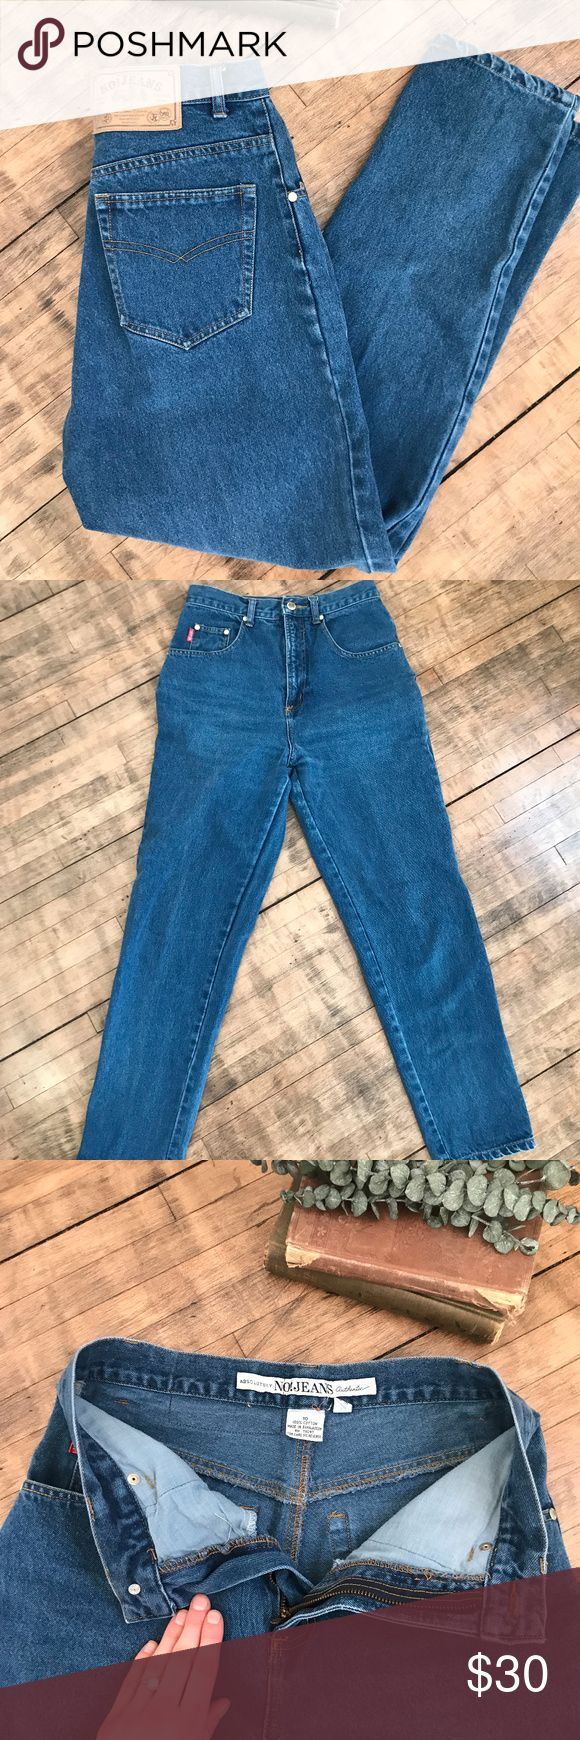 Absolutely No Jeans hi rise mom jeans Absolutely no jeans hi rise mom jeans! so high wasted!  size 10, model is a size 2/4 and they fit large. best would fit 6 or an 8 or please refer to measurements!  condition: used, no flaws to note!  measurements:  waist: 15 in  rise: 12 in  inseam: 28 in  hips: 19 in  thigh: 9 in Vintage Jeans Skinny